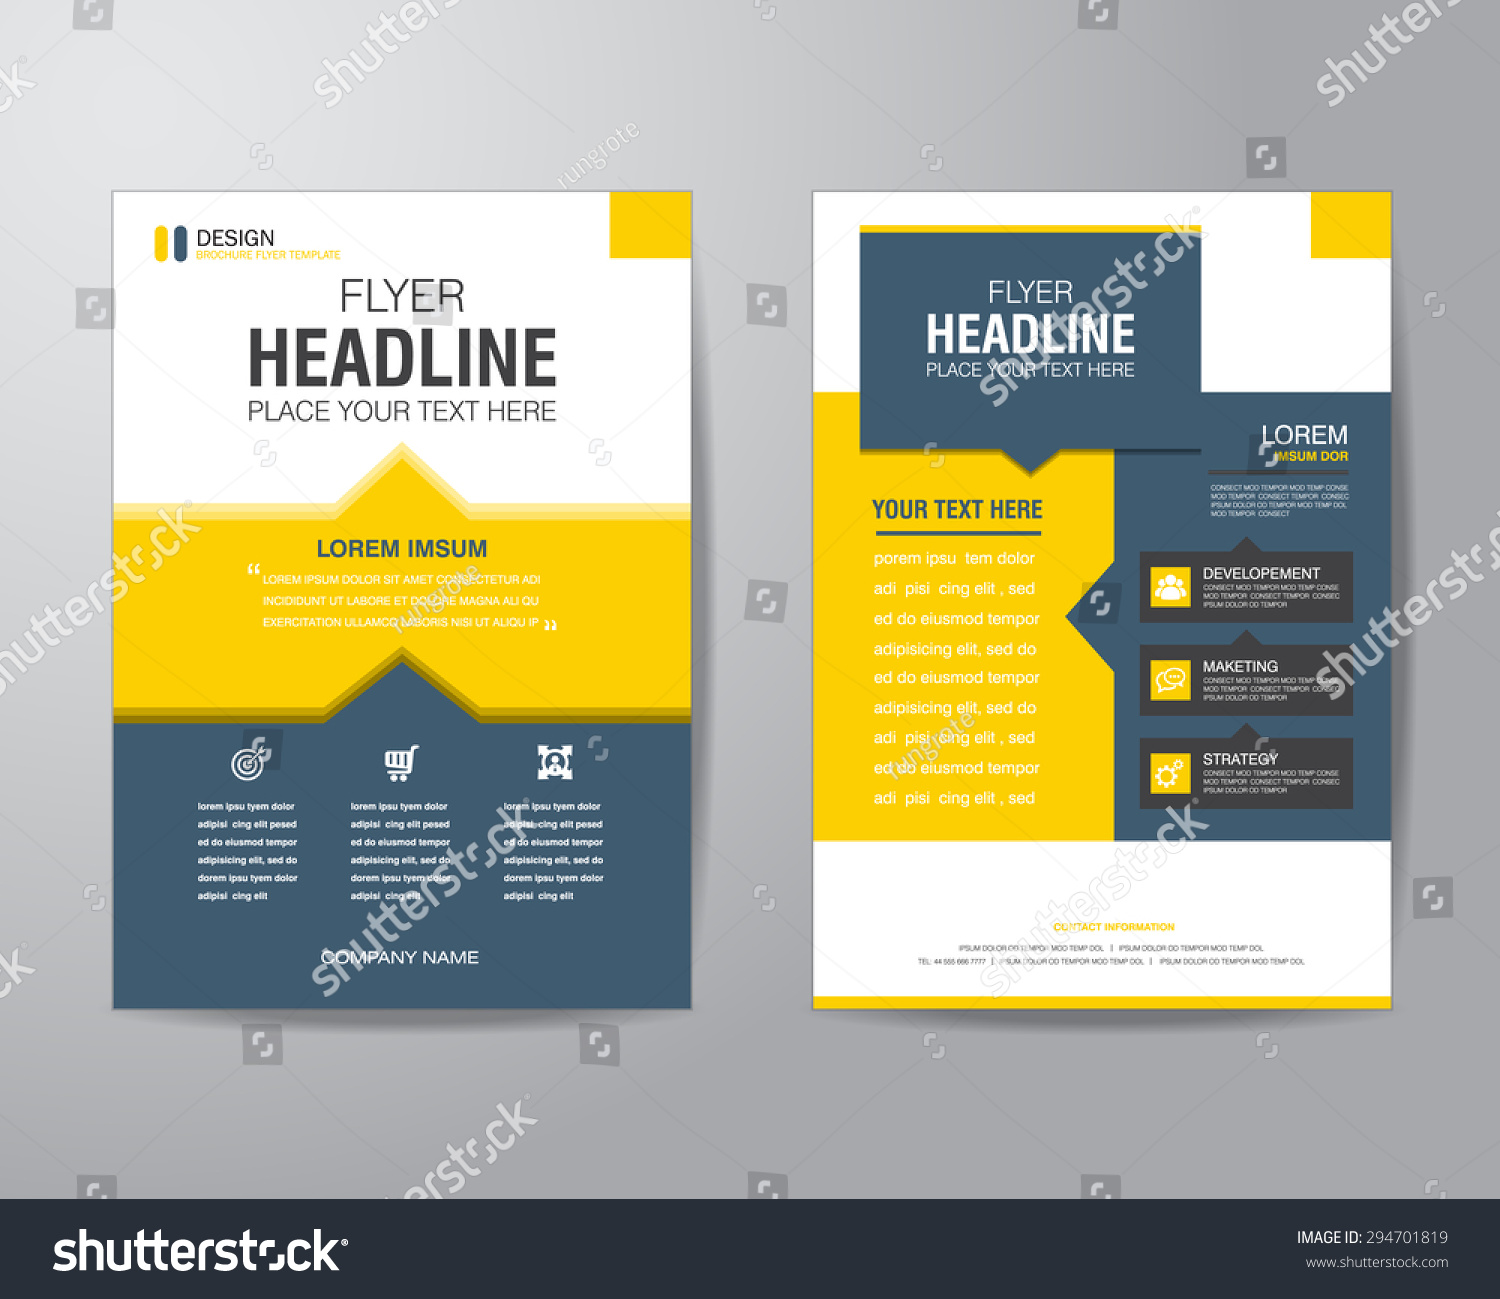 Business Brochure Flyer Design Layout Template Vector – Business Brochure Design